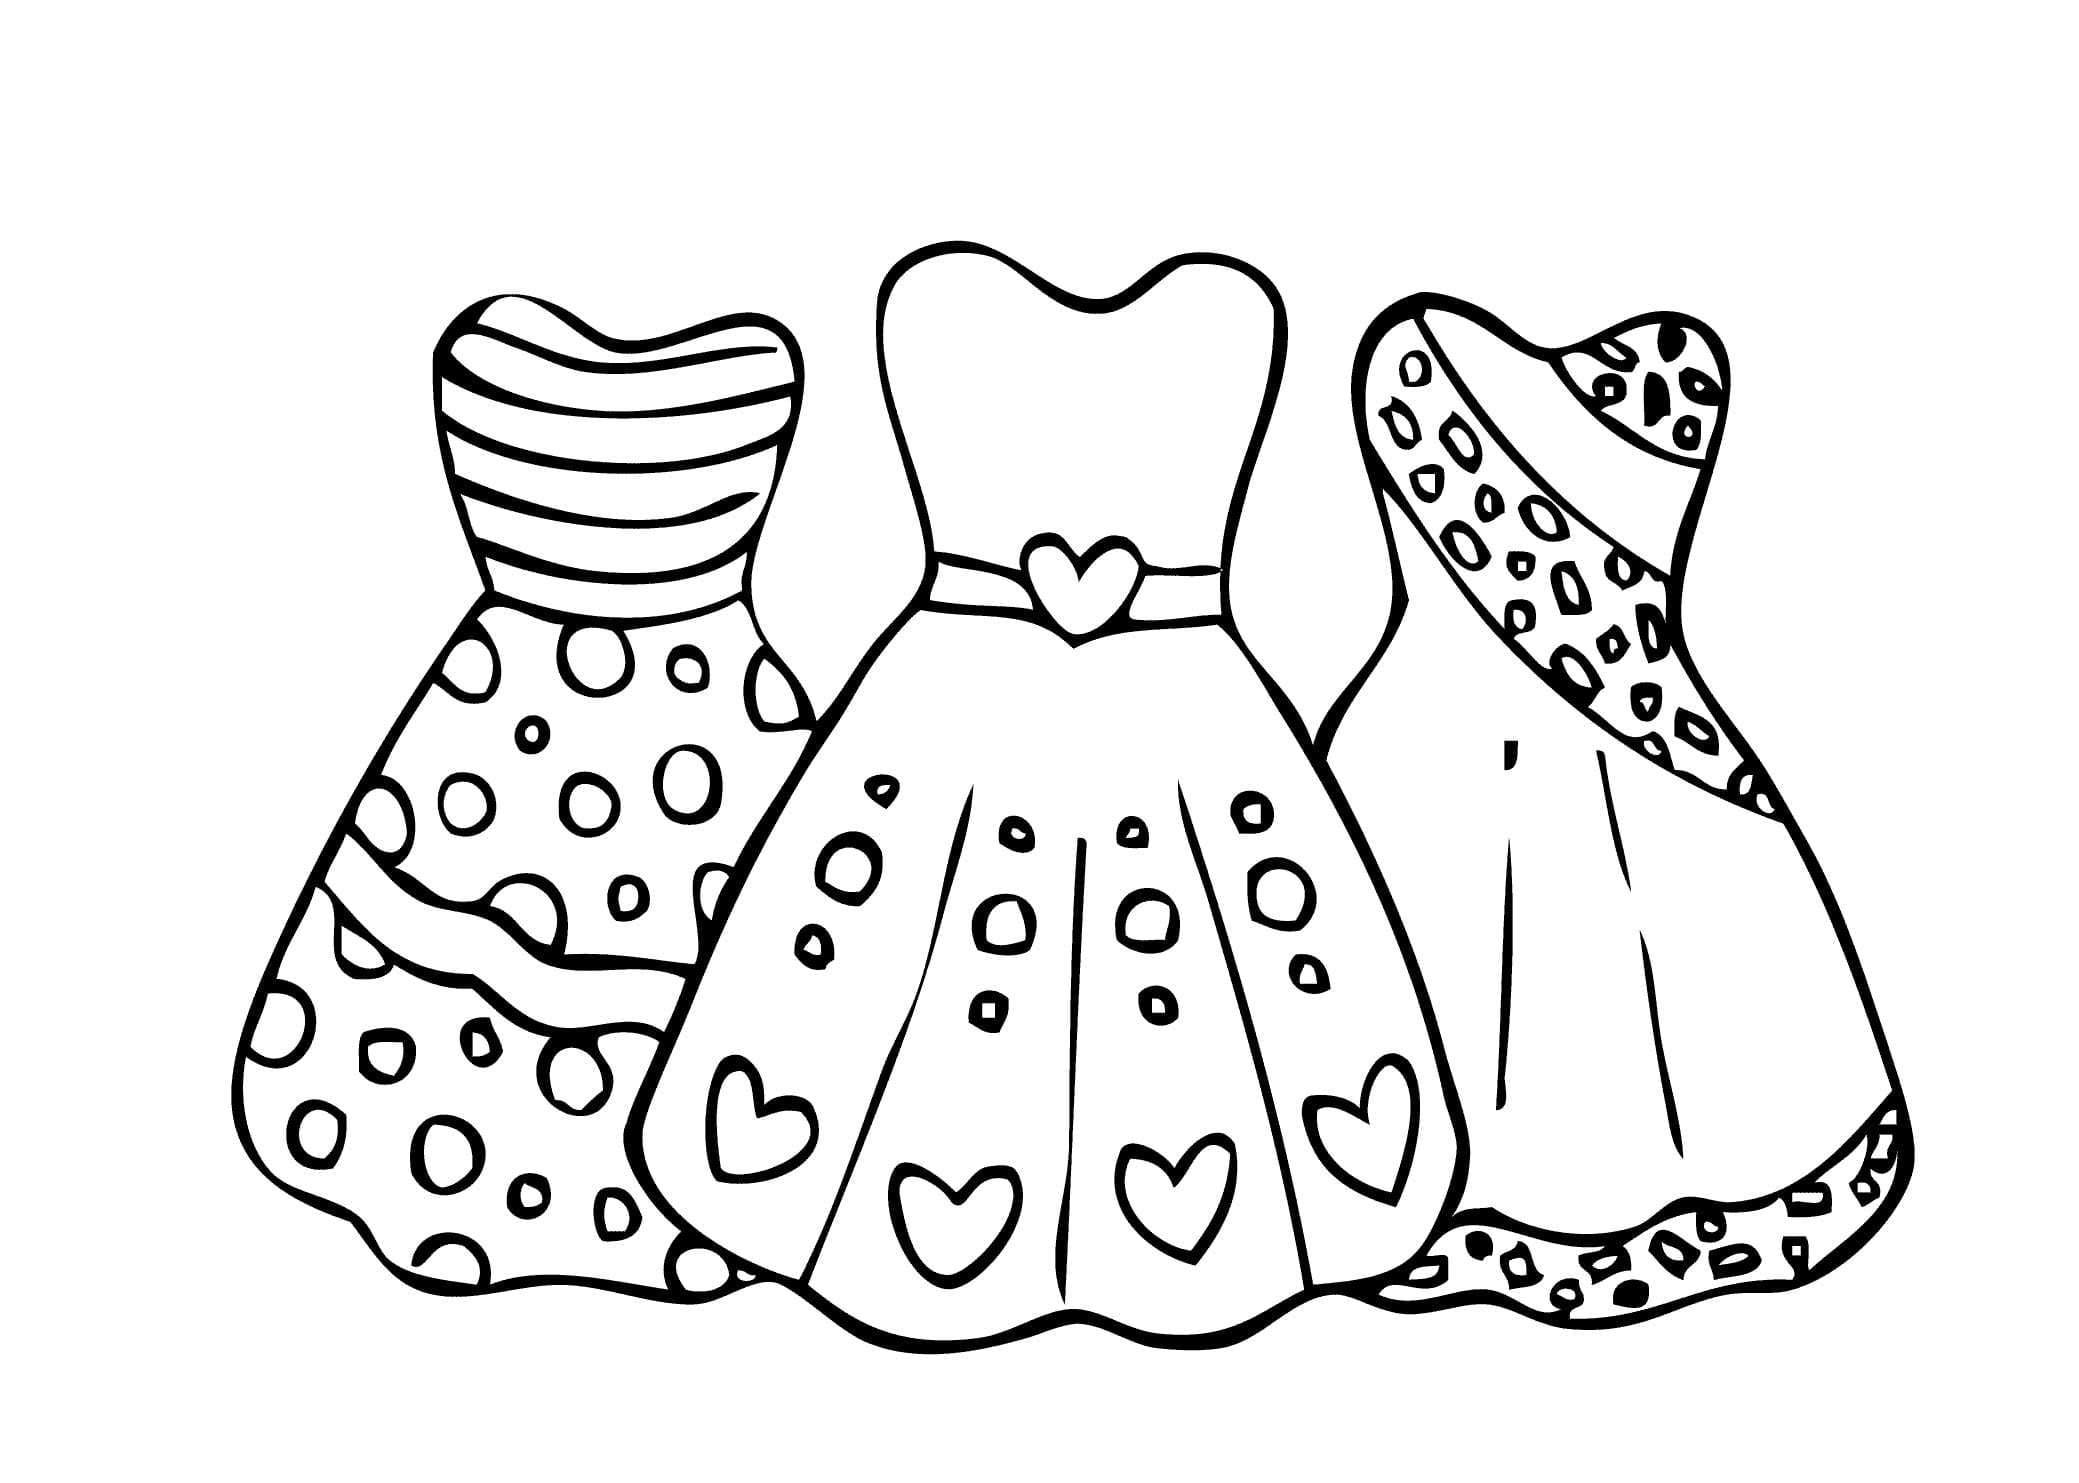 Color Pages For Girls 10 And Up Coloring Pages For Girls 10 And Up